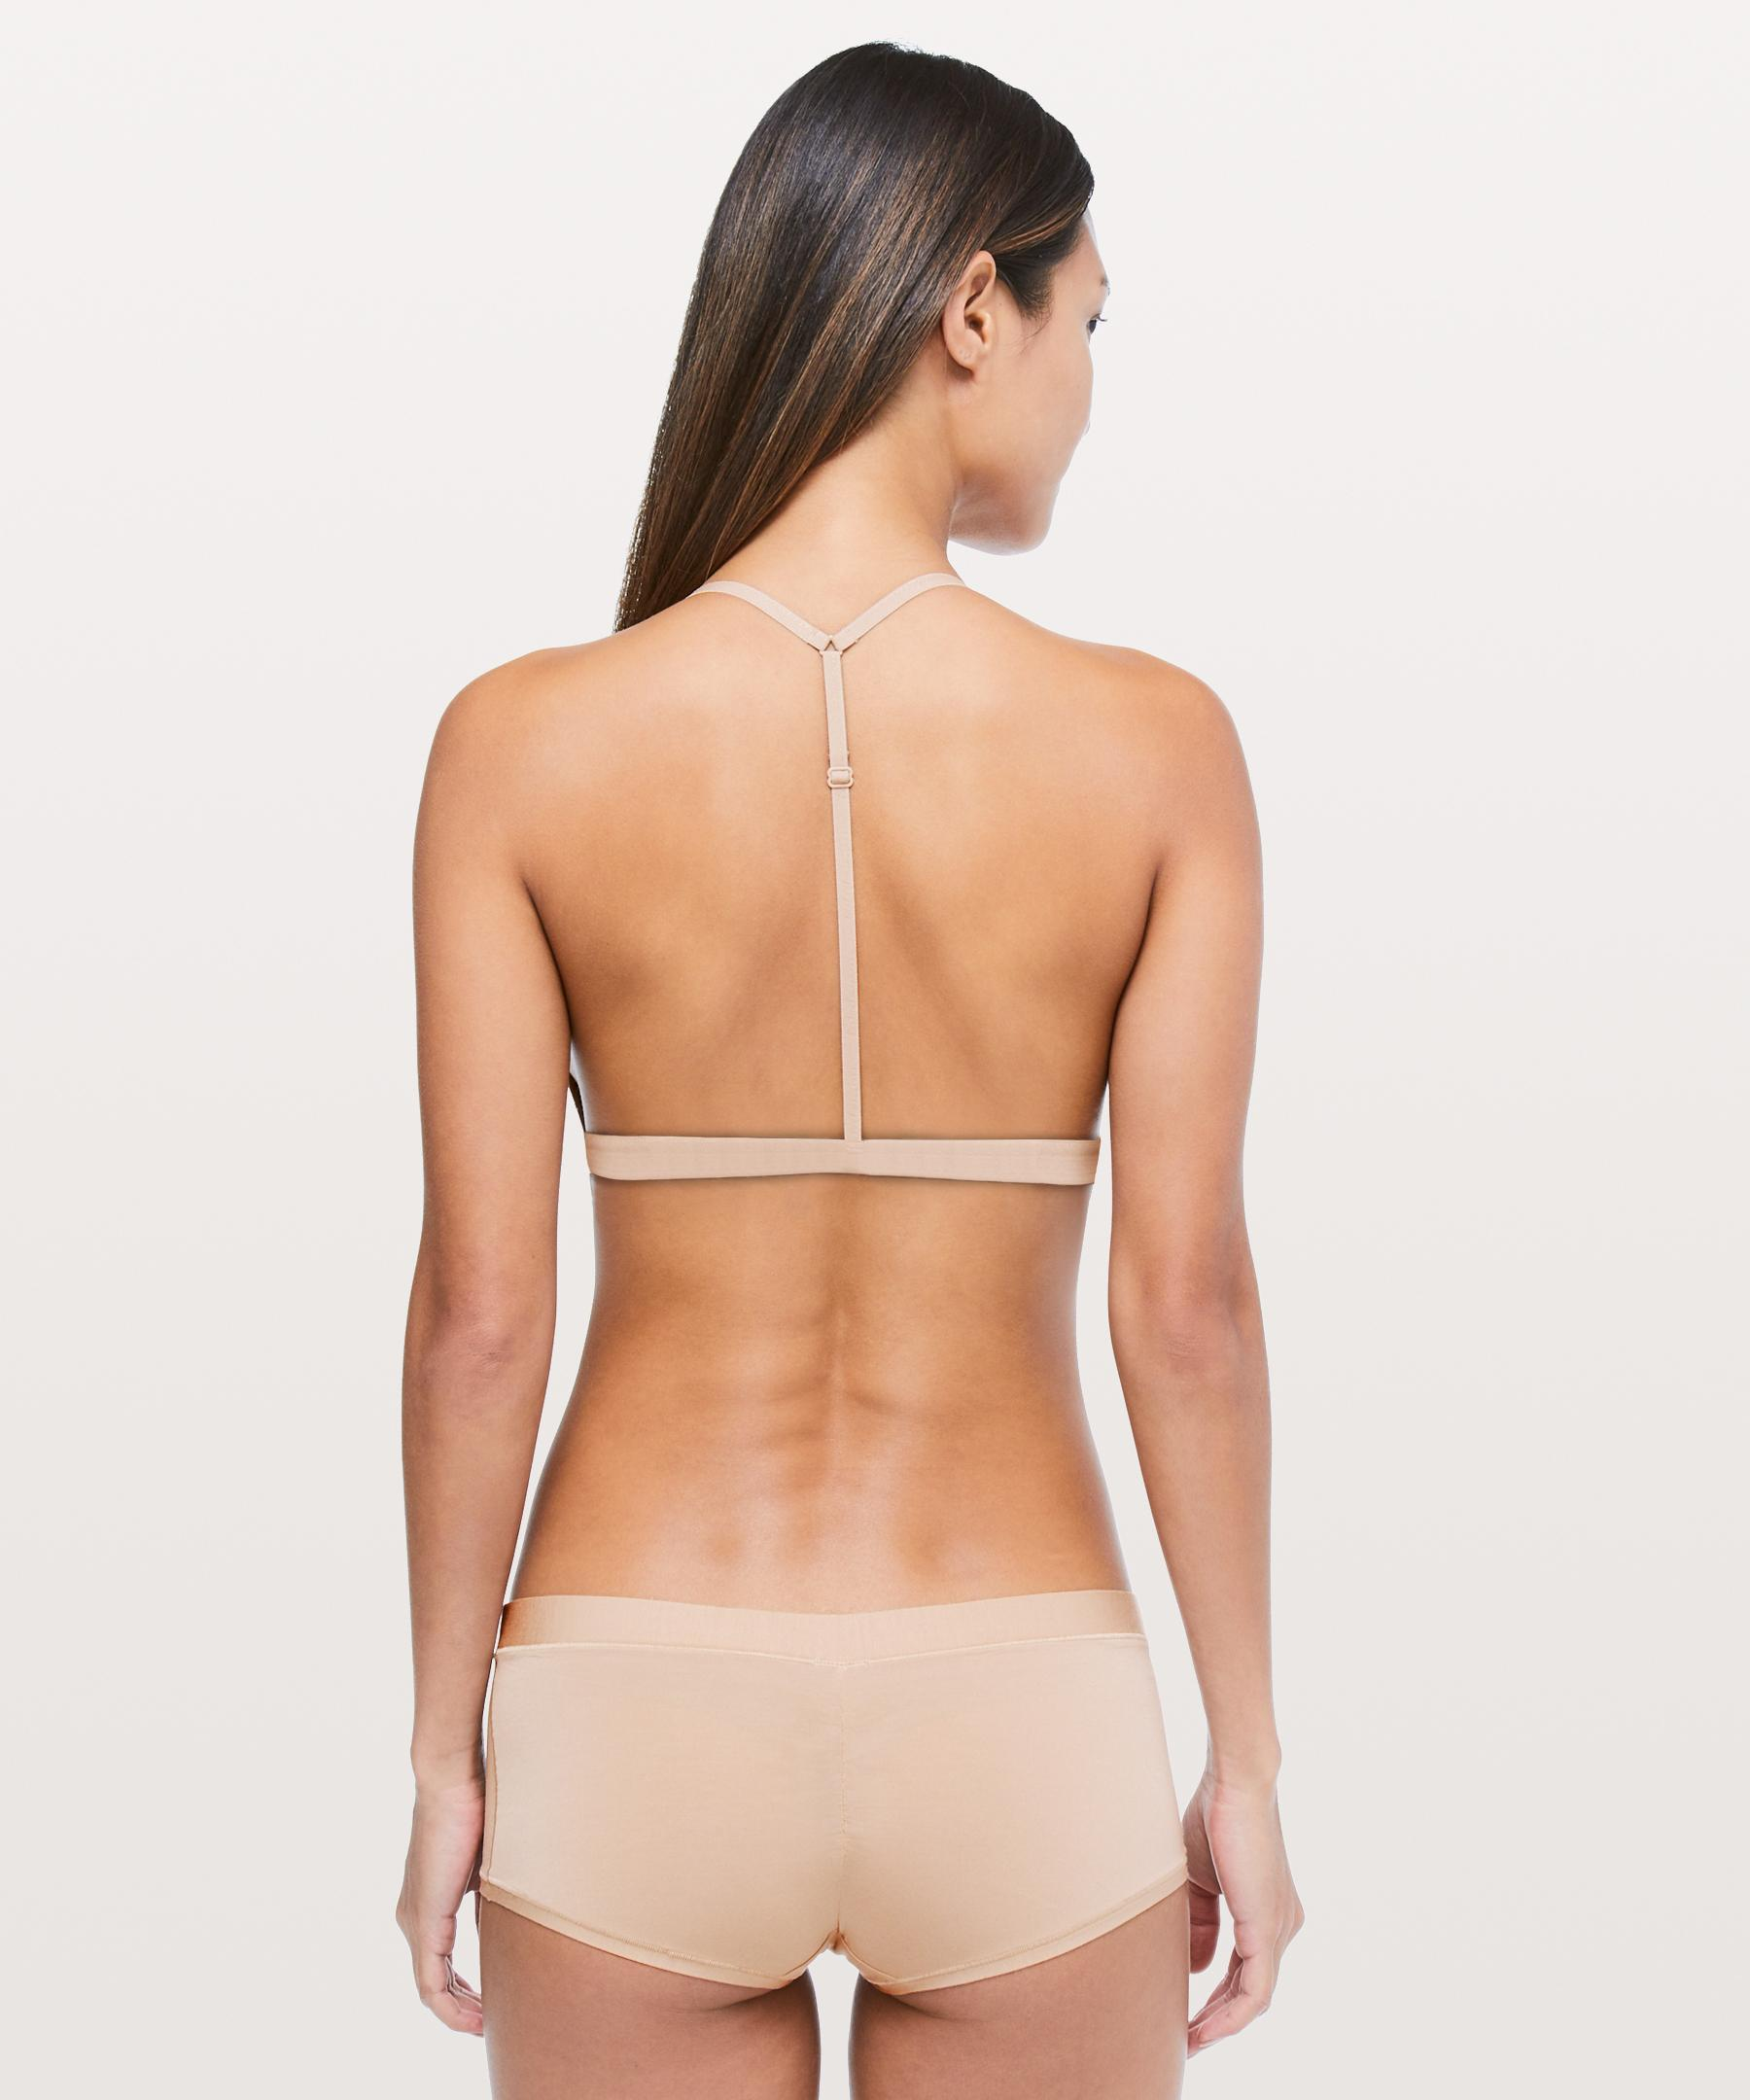 bc27f056ea Lyst - lululemon athletica Simply There Triangle Bralette in Natural